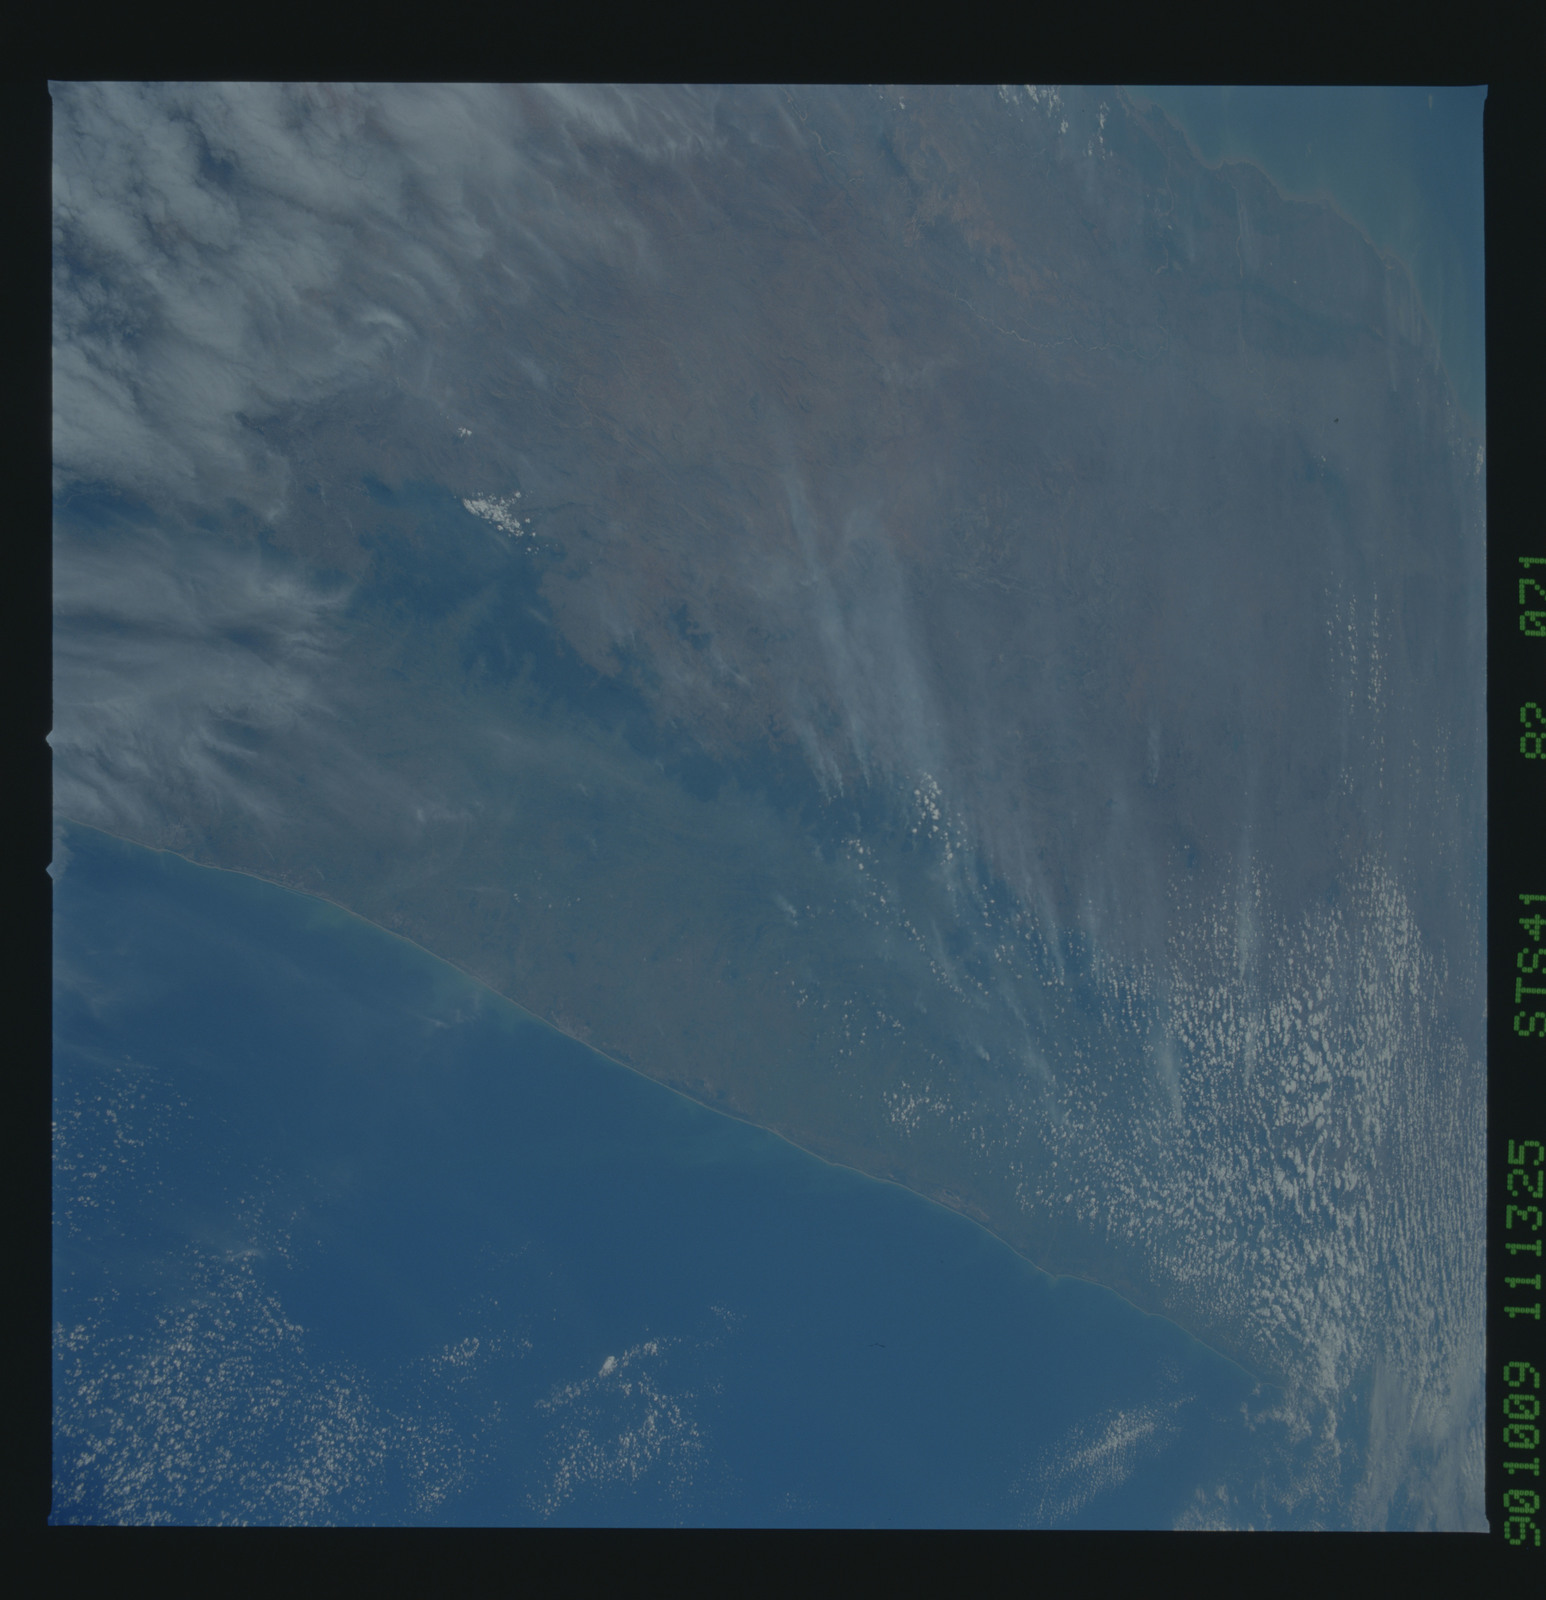 S41-82-071 - STS-041 - STS-41 earth observations